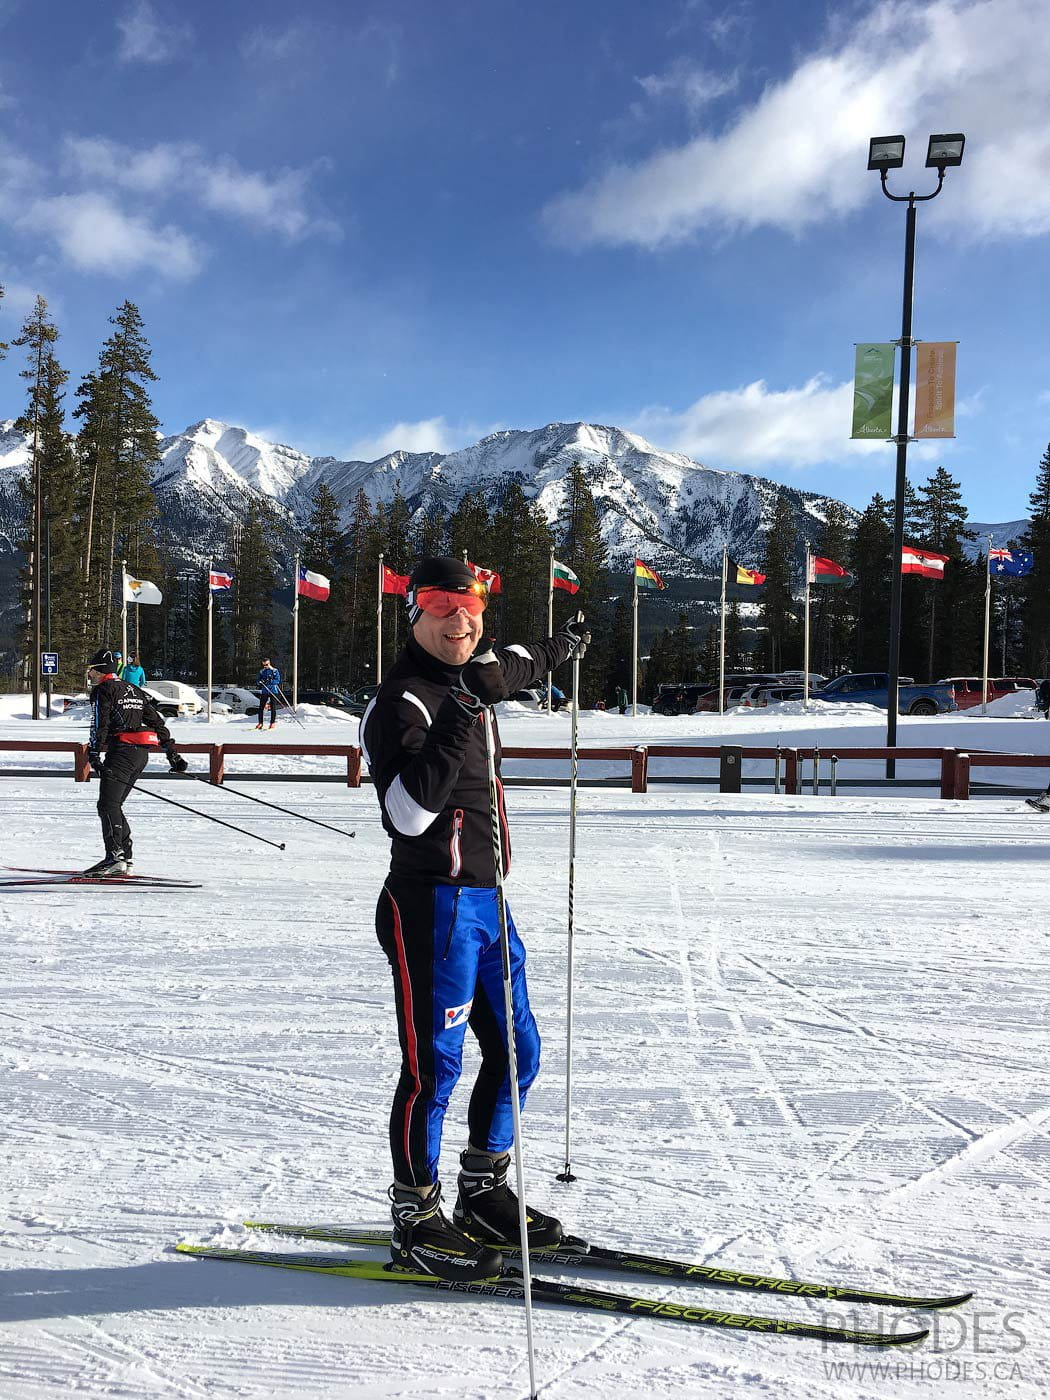 Лыжный стадион в Canmore Nordic Center